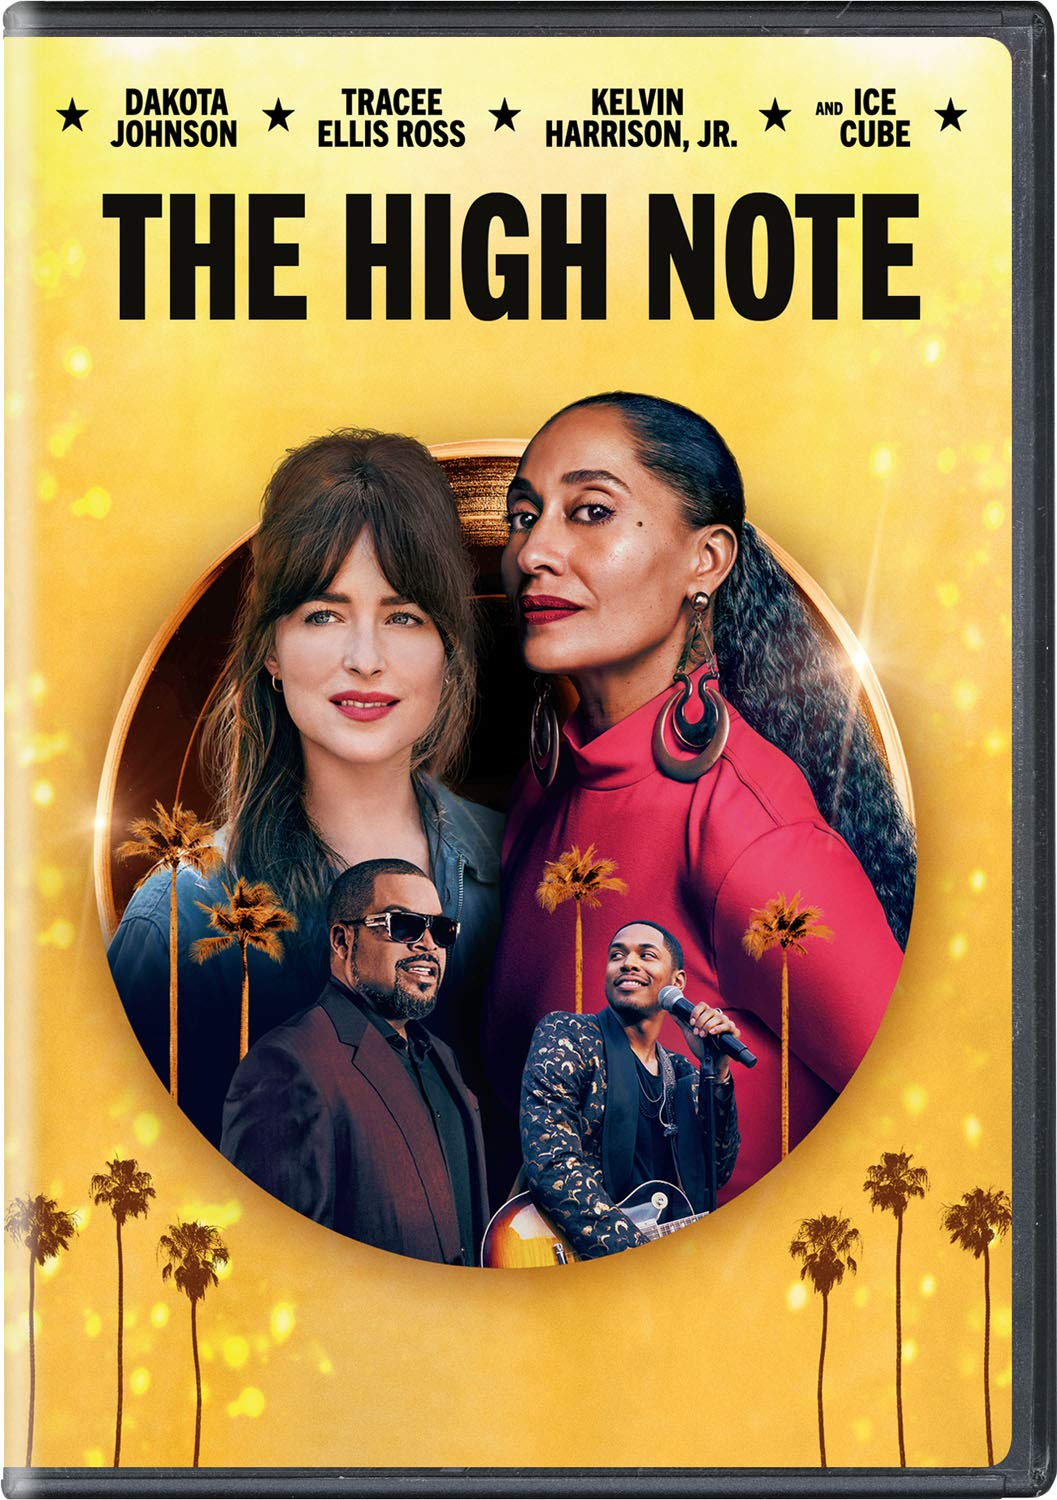 Amazon.com: The High Note: Dakota Johnson, Tracee Ellis Ross, Kelvin  Harrison, Jr., Ice Cube, Bill Pullman, Zoe Chao, Eddie Izzard, Nisha  Ganatra, Tim Bevan, Eric Fellner, Flora Greeson: Movies & TV